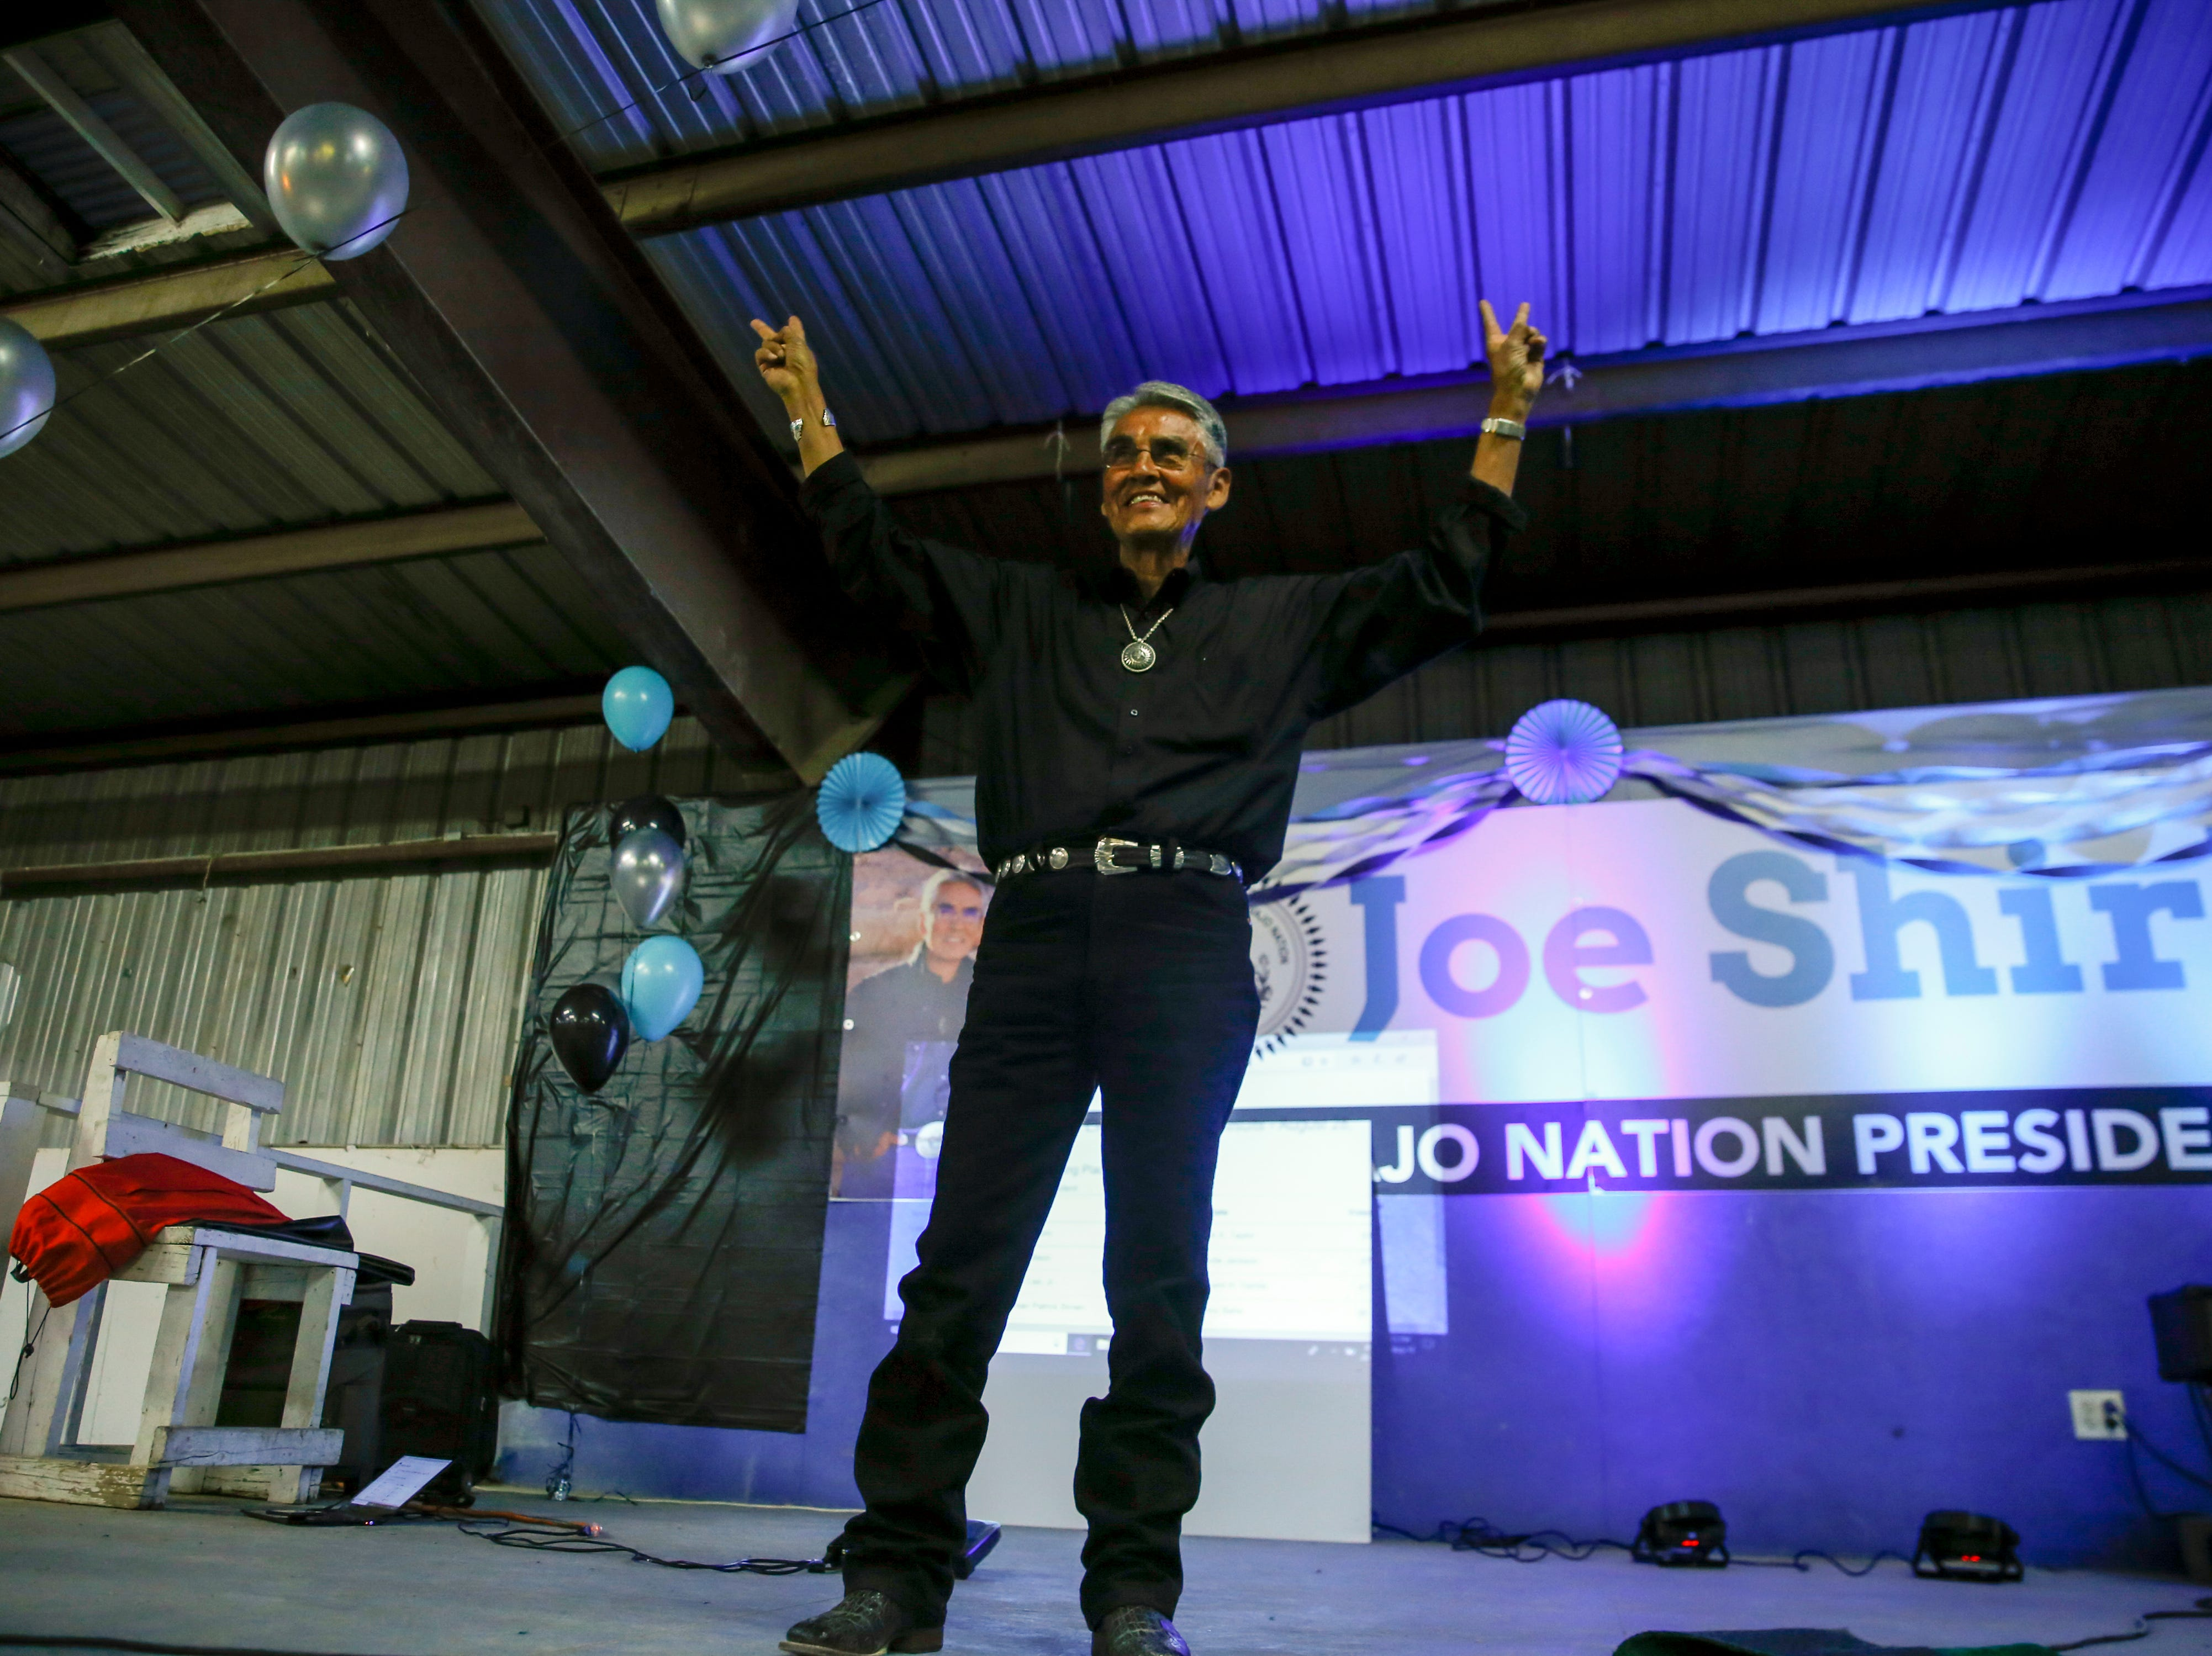 Navajo Nation Presidential candidate Joe Shirley Jr., acknowledges his supporters during his campaign party, Tuesday, Aug. 28, 2018 at Nakai Hall Navajo Nation Fairground in Window Rock, Ariz.